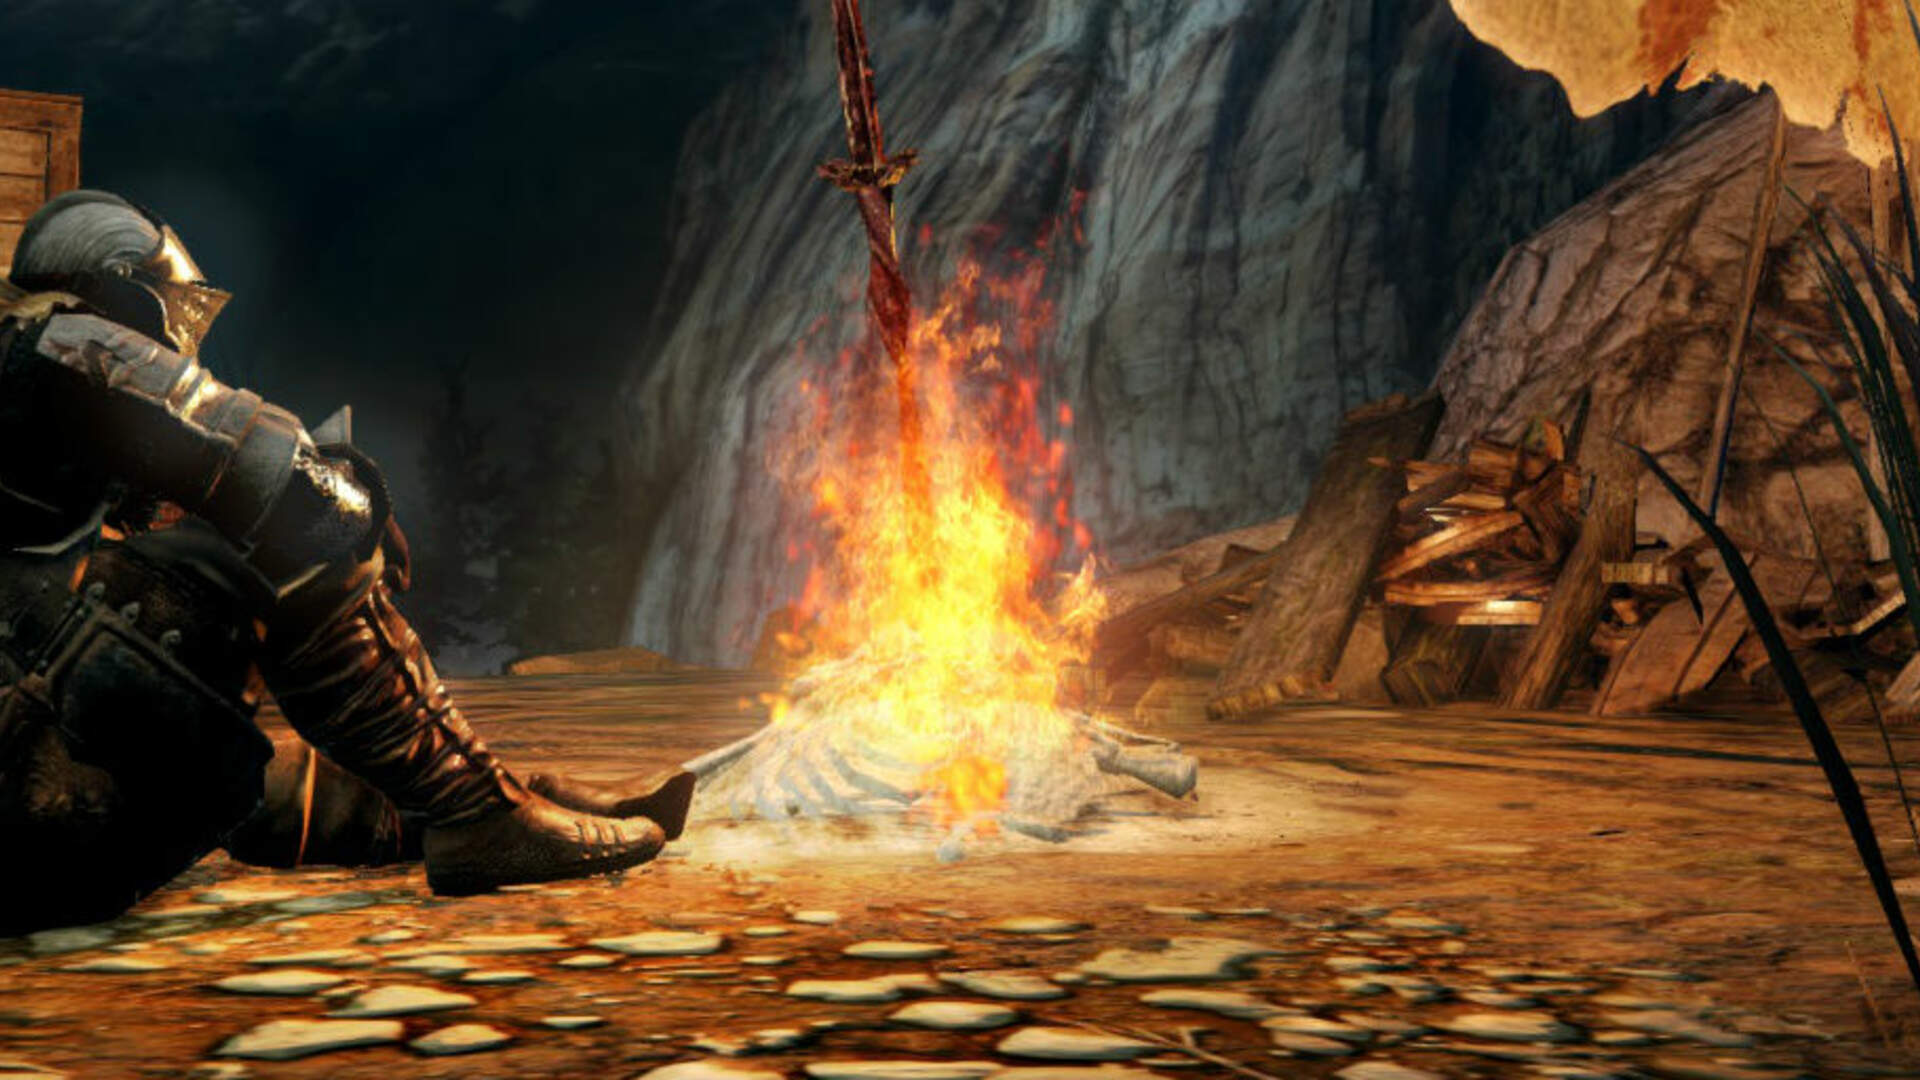 Dark Souls 2 Guide: Things Betwixt and Majula Walkthrough